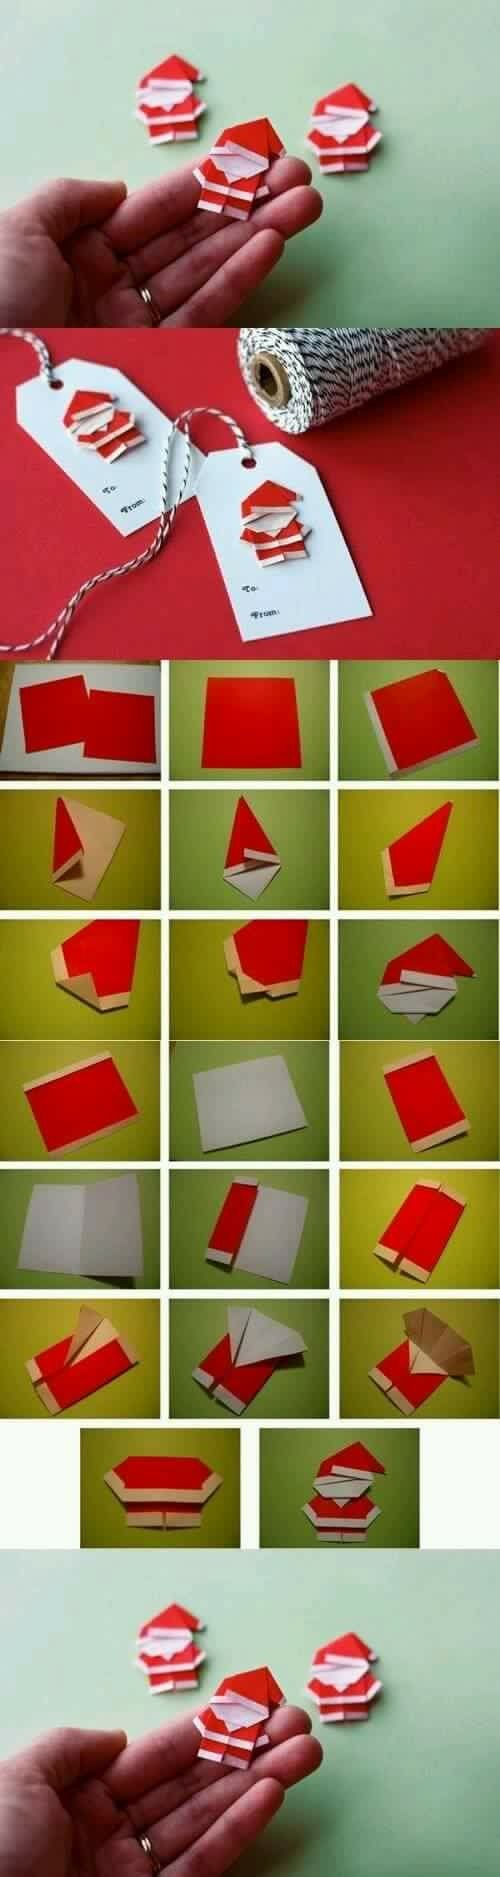 Origami Santa Claus great to use